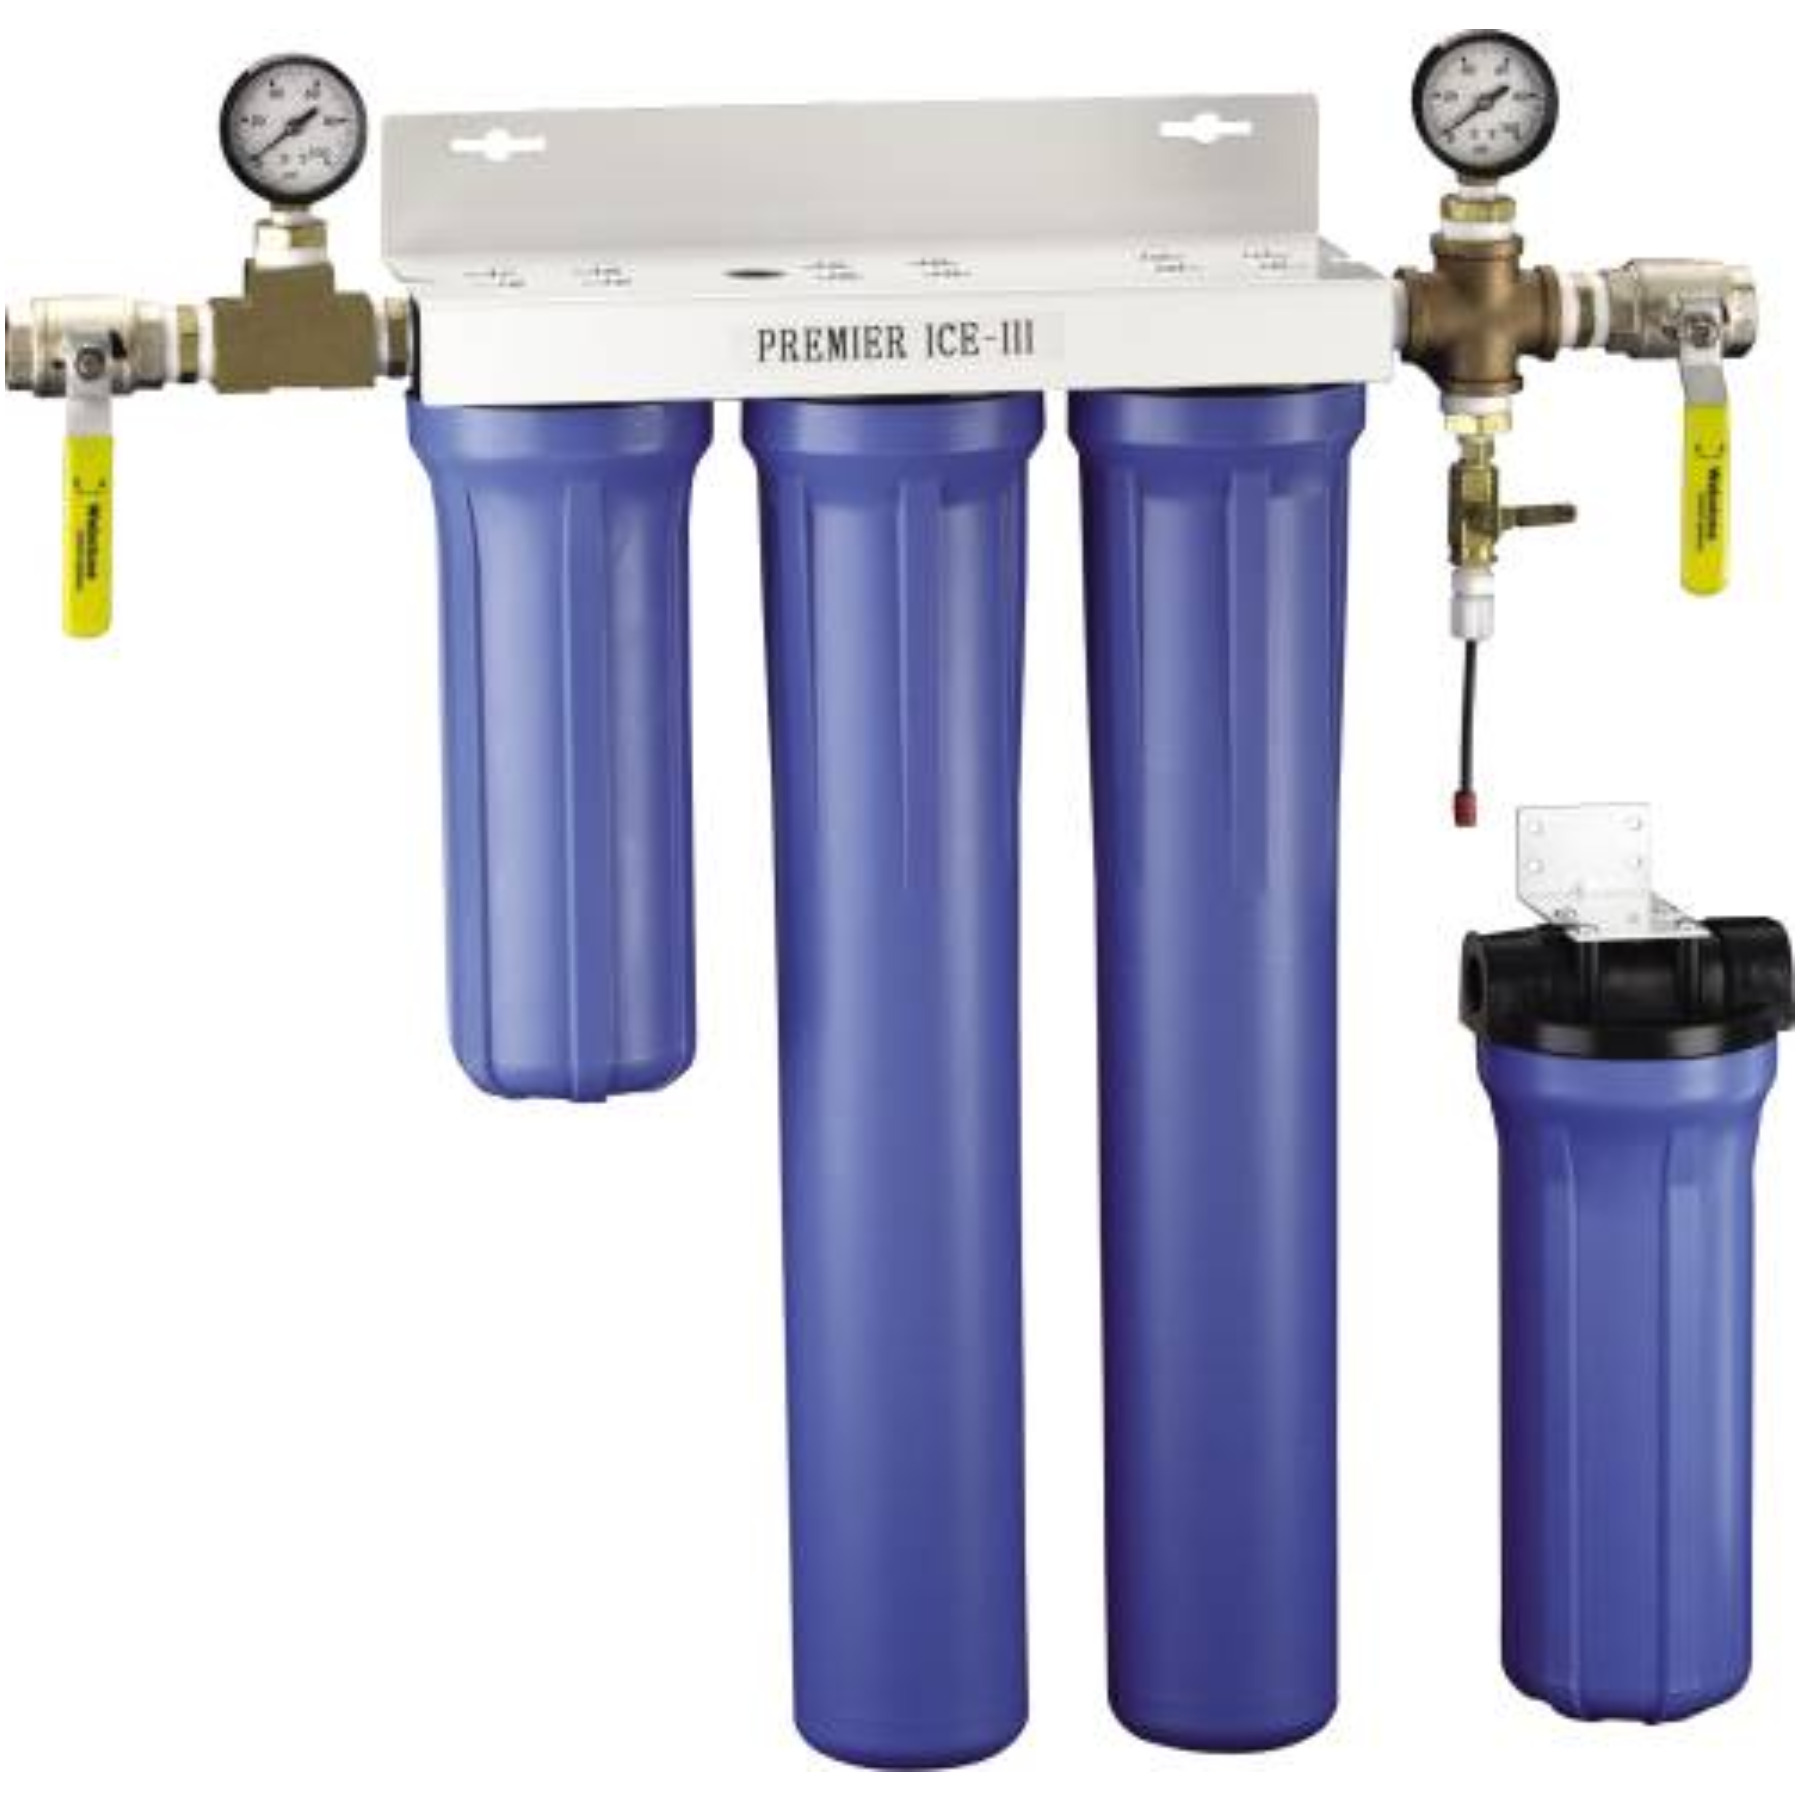 COMMERCIAL STEAM AND ICE FILTRATION SYSTEM